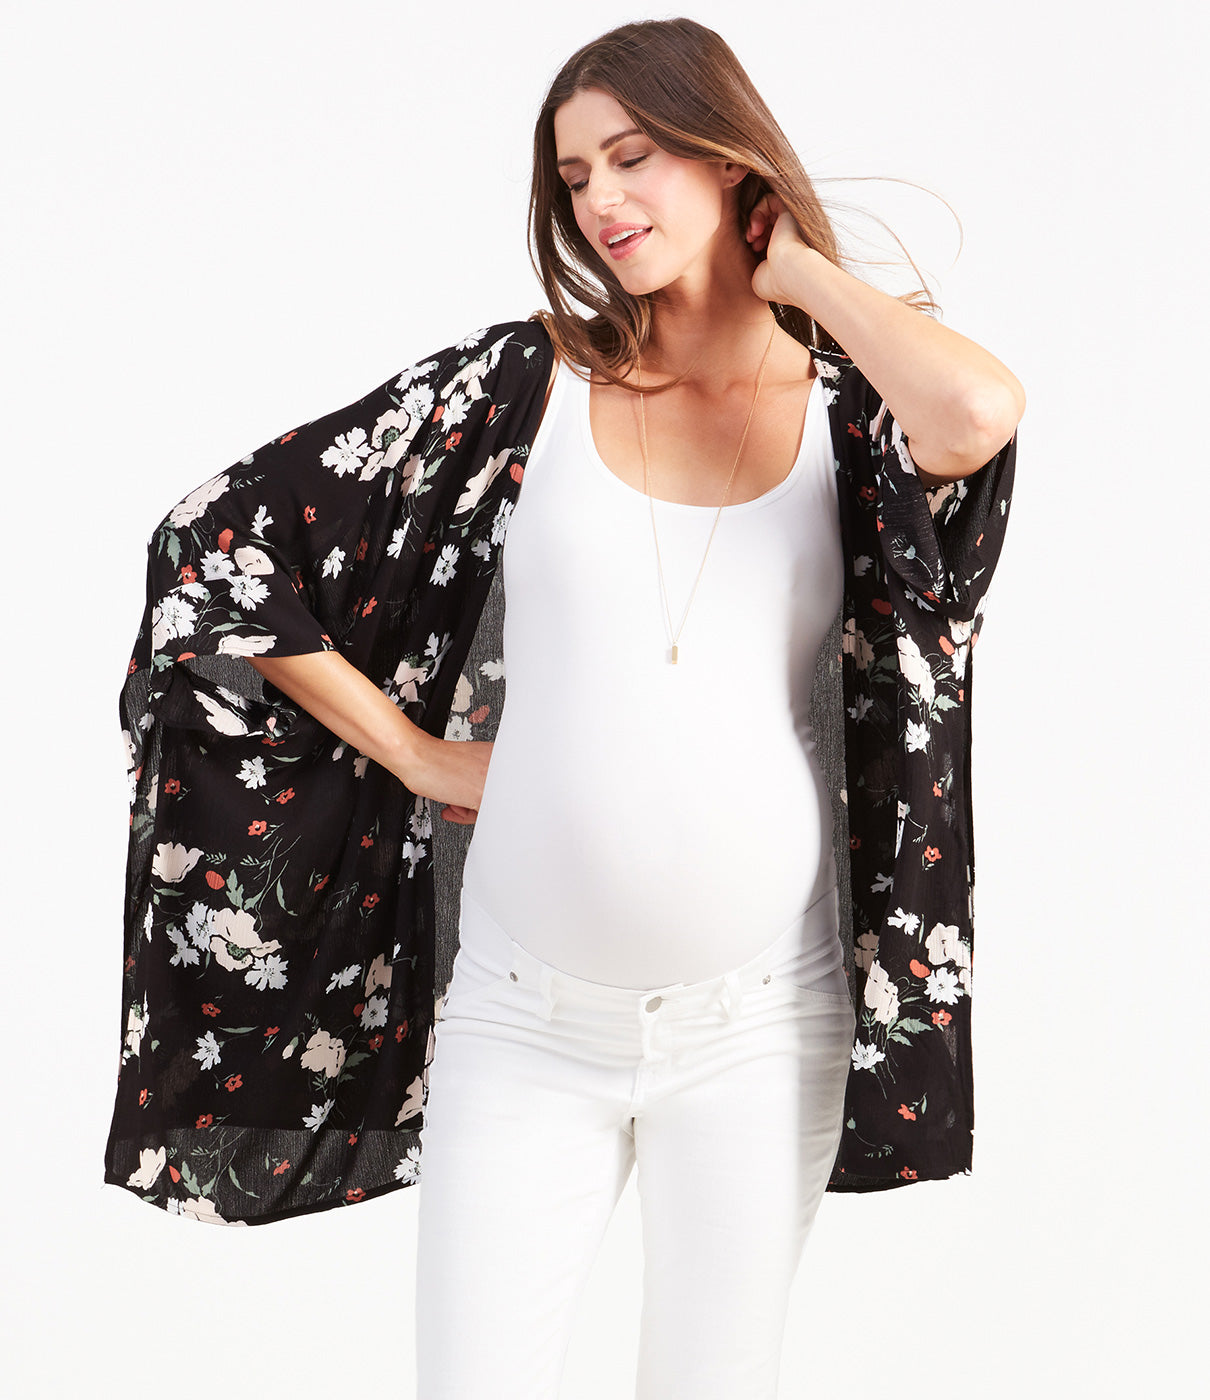 Fashion + FunctionComfy kimono silhouette and an all-over floral print make this 3rd piece a stand out in your maternity closet.